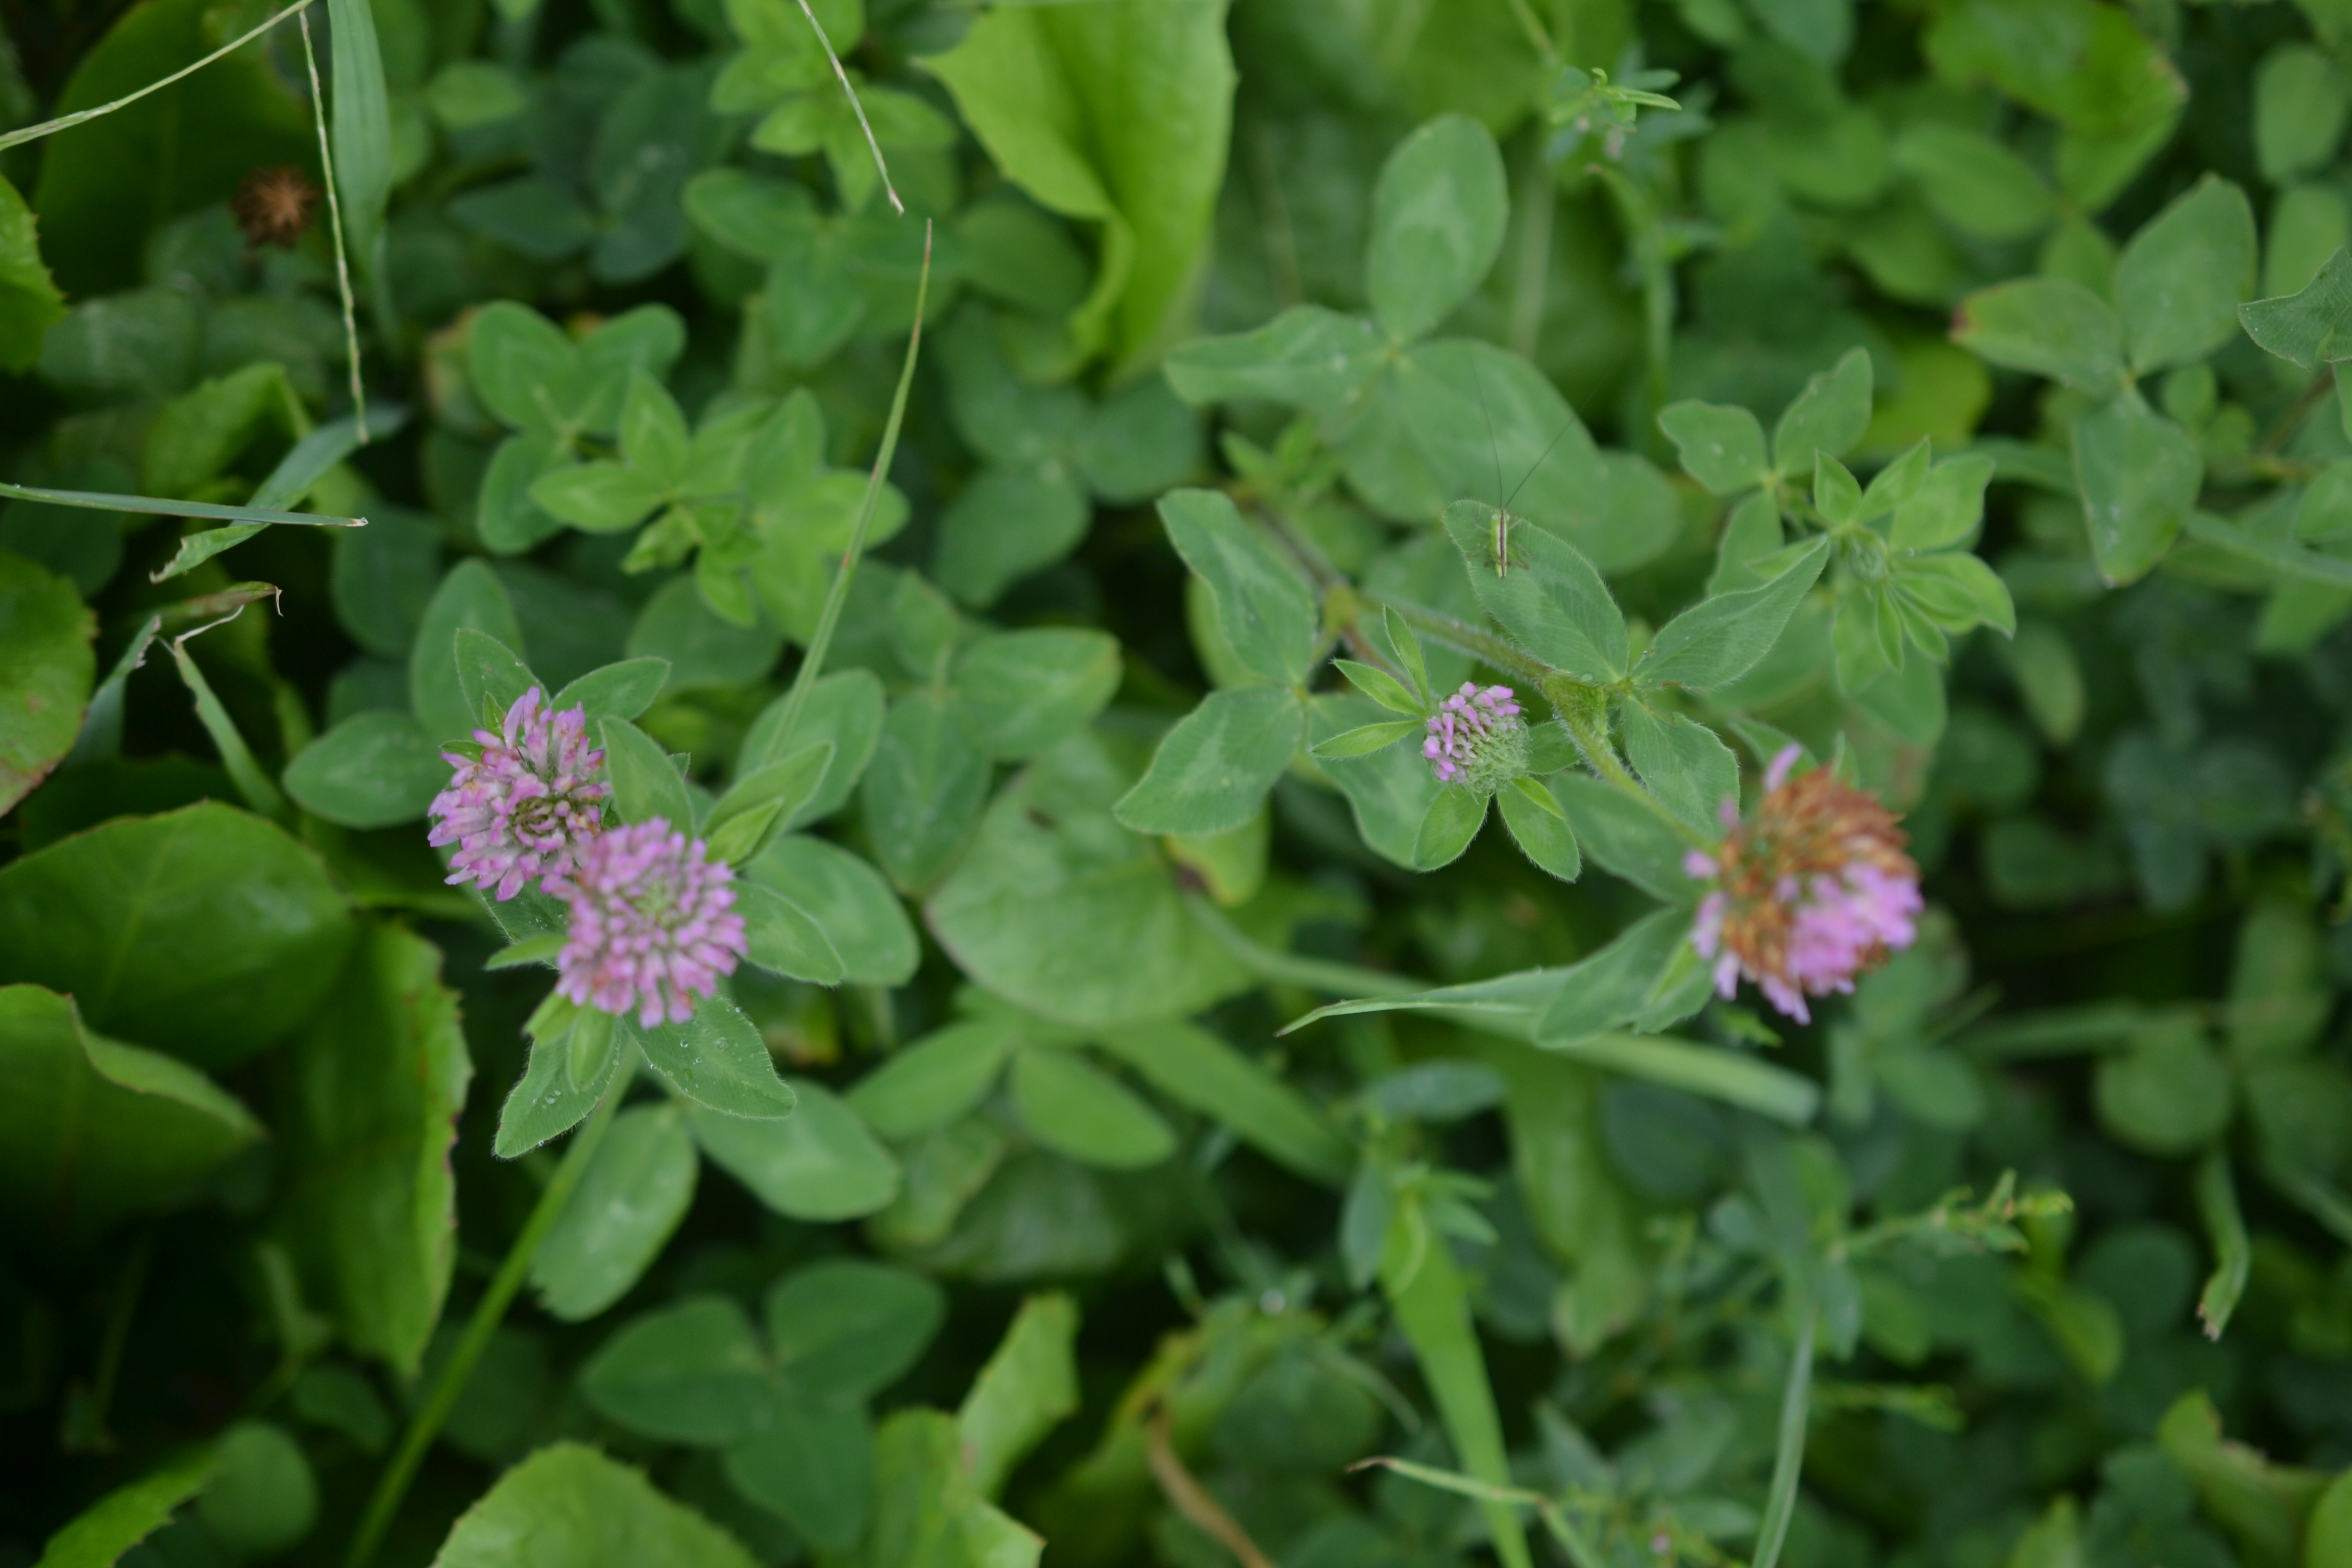 clover and chicory